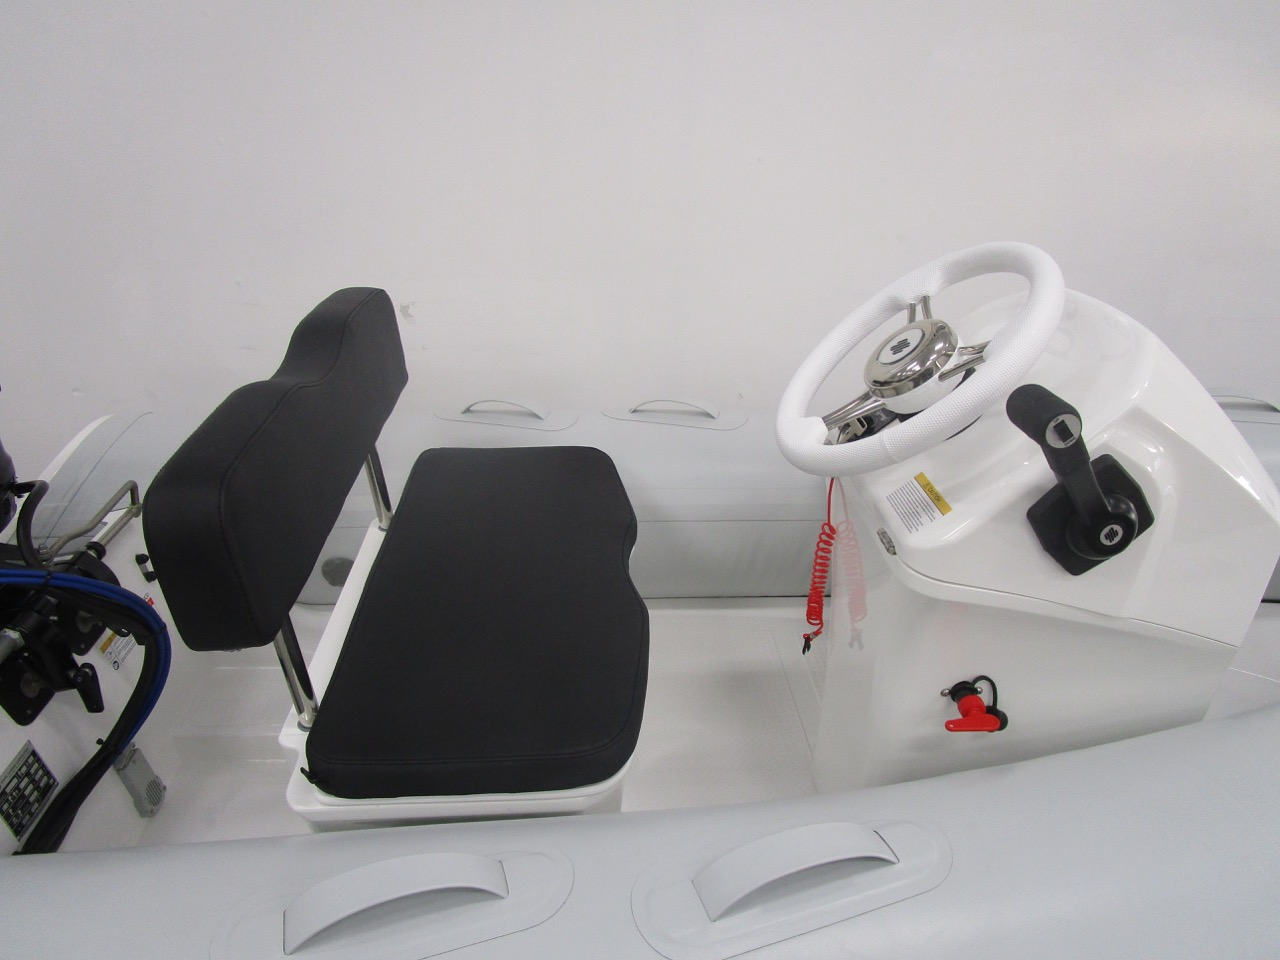 GRAND S330 RIB tender helm seat and console